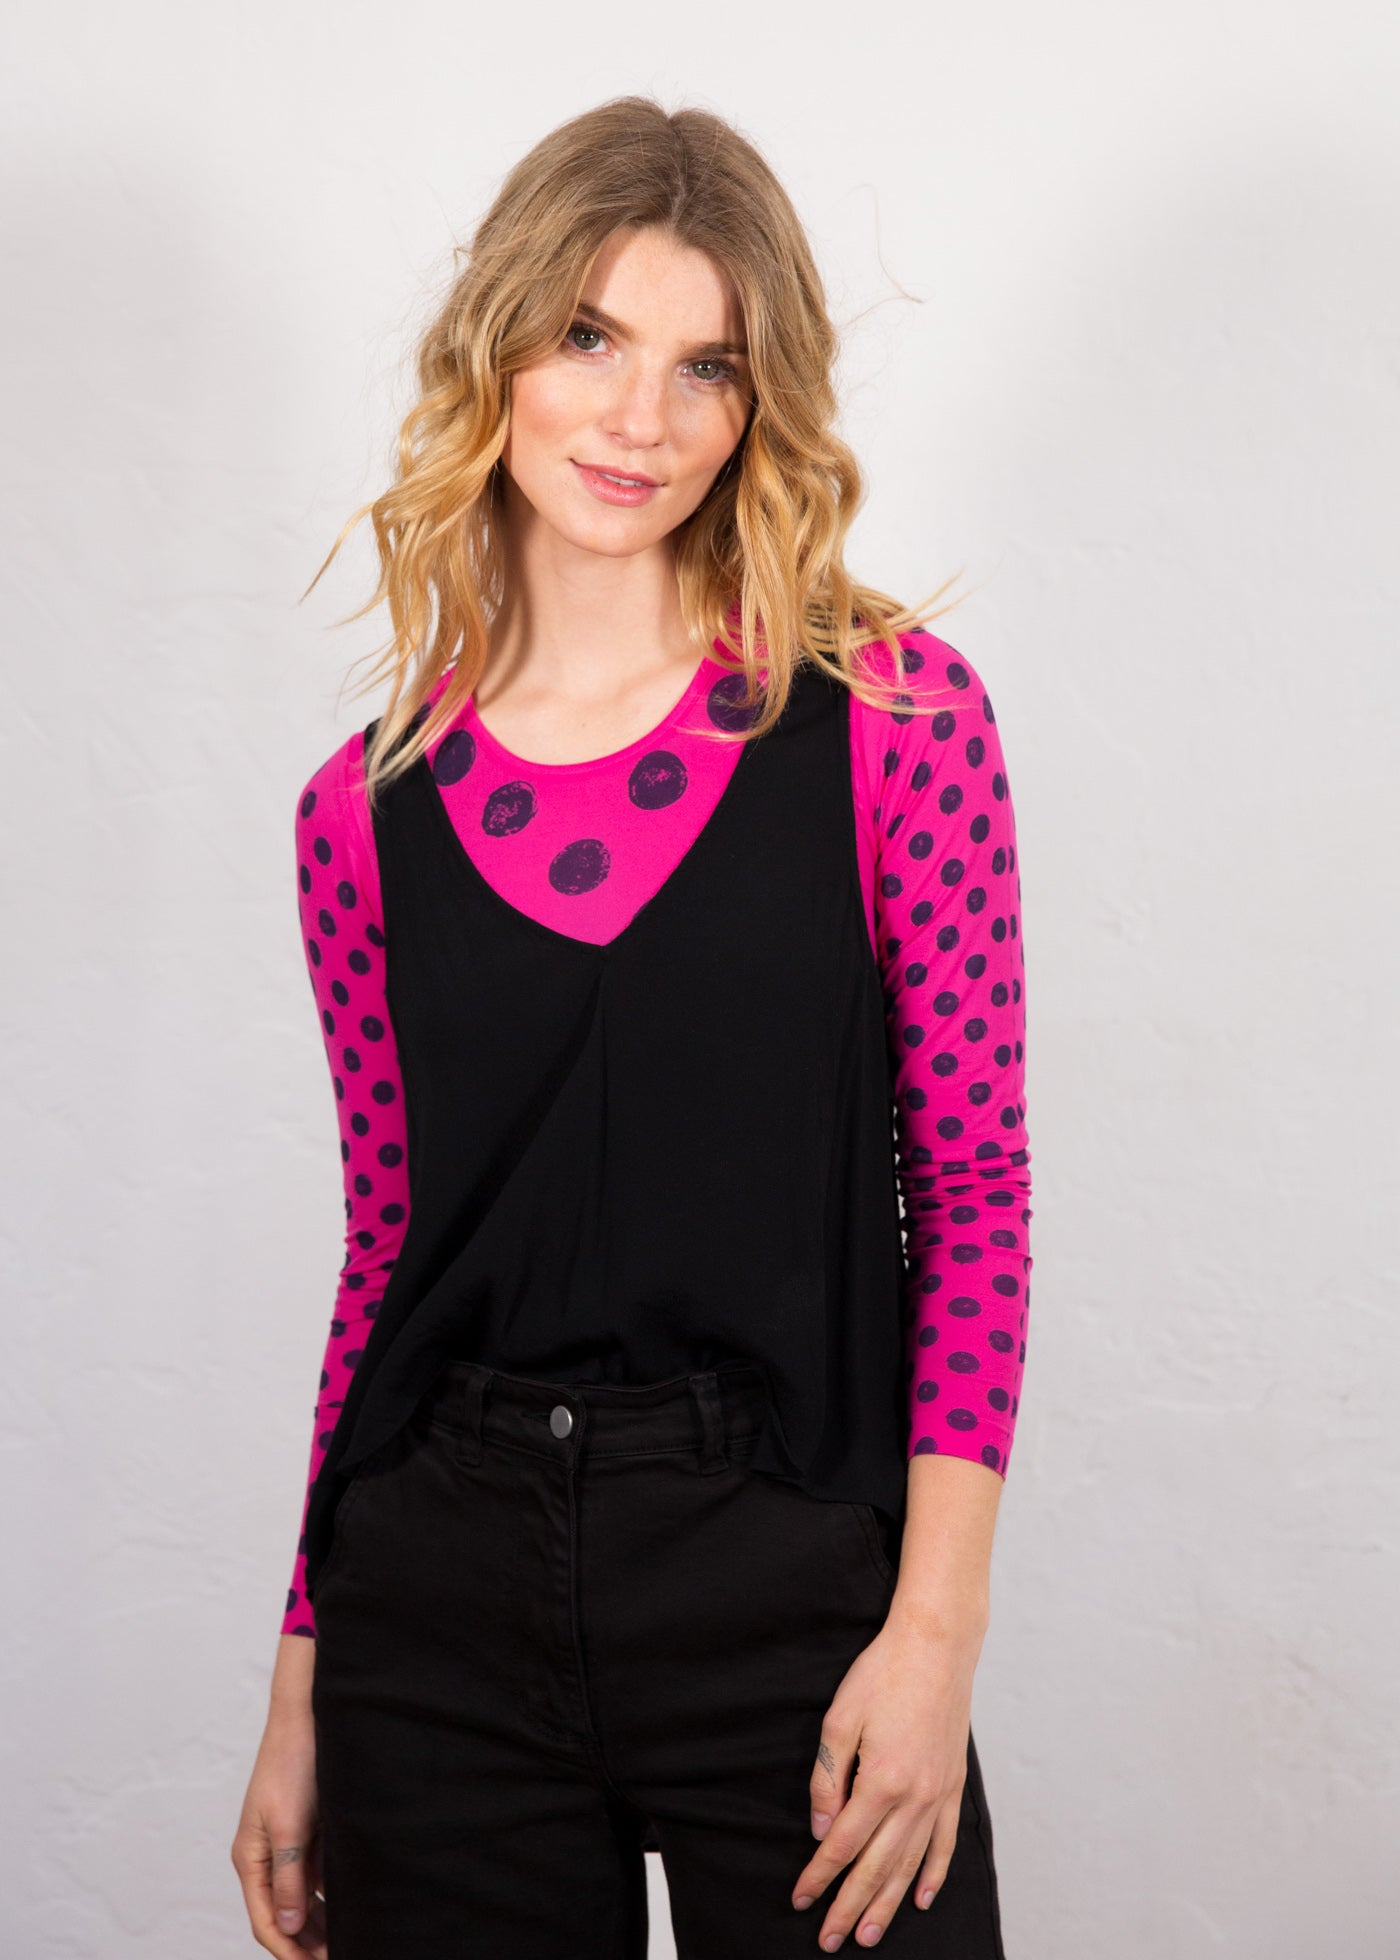 Grunge Polka Dot Crew Neck Top - New Colors!